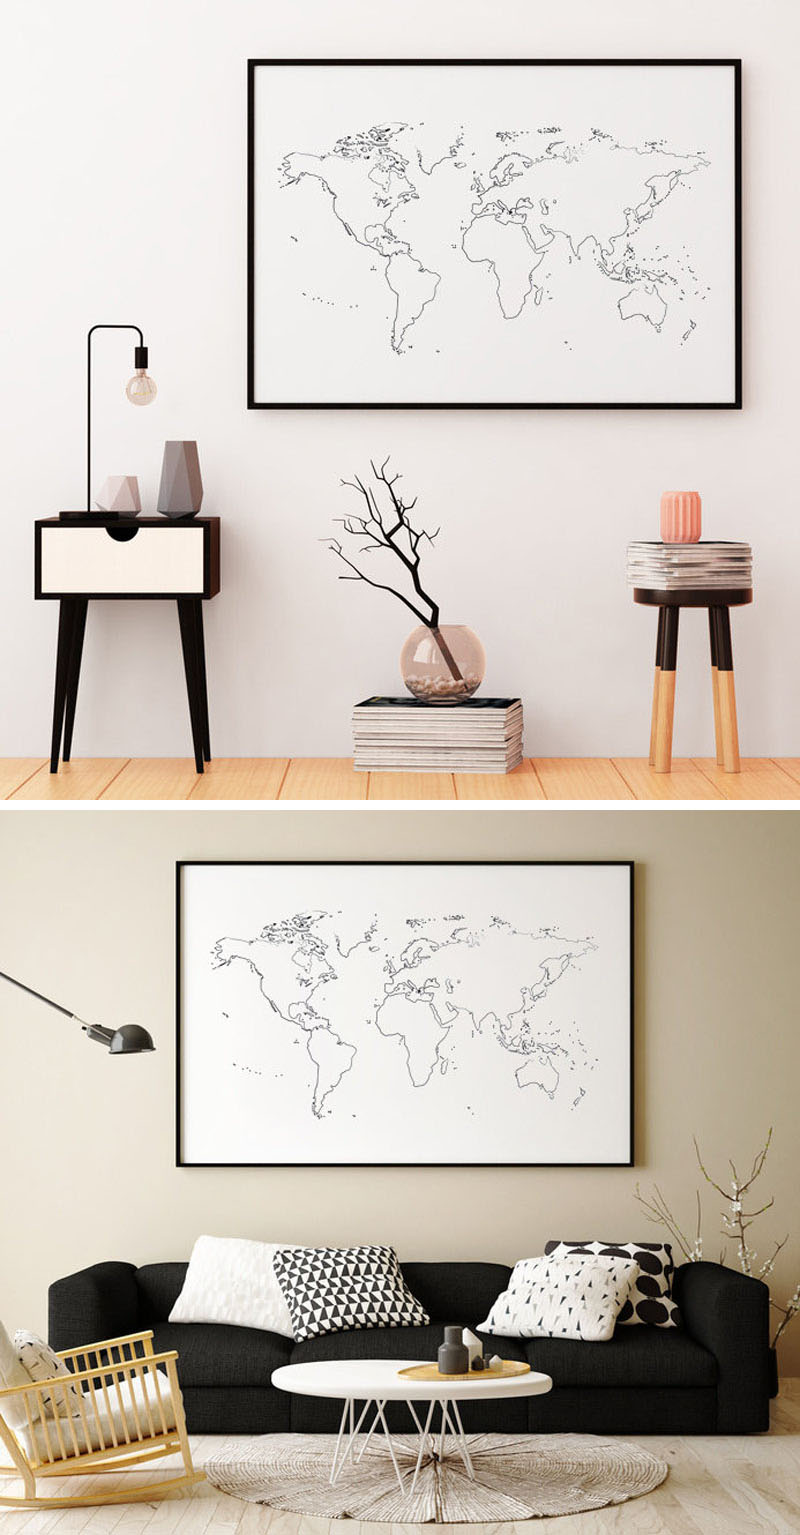 minimalist-world-map-black-and-white-wall-art-190317-109-06